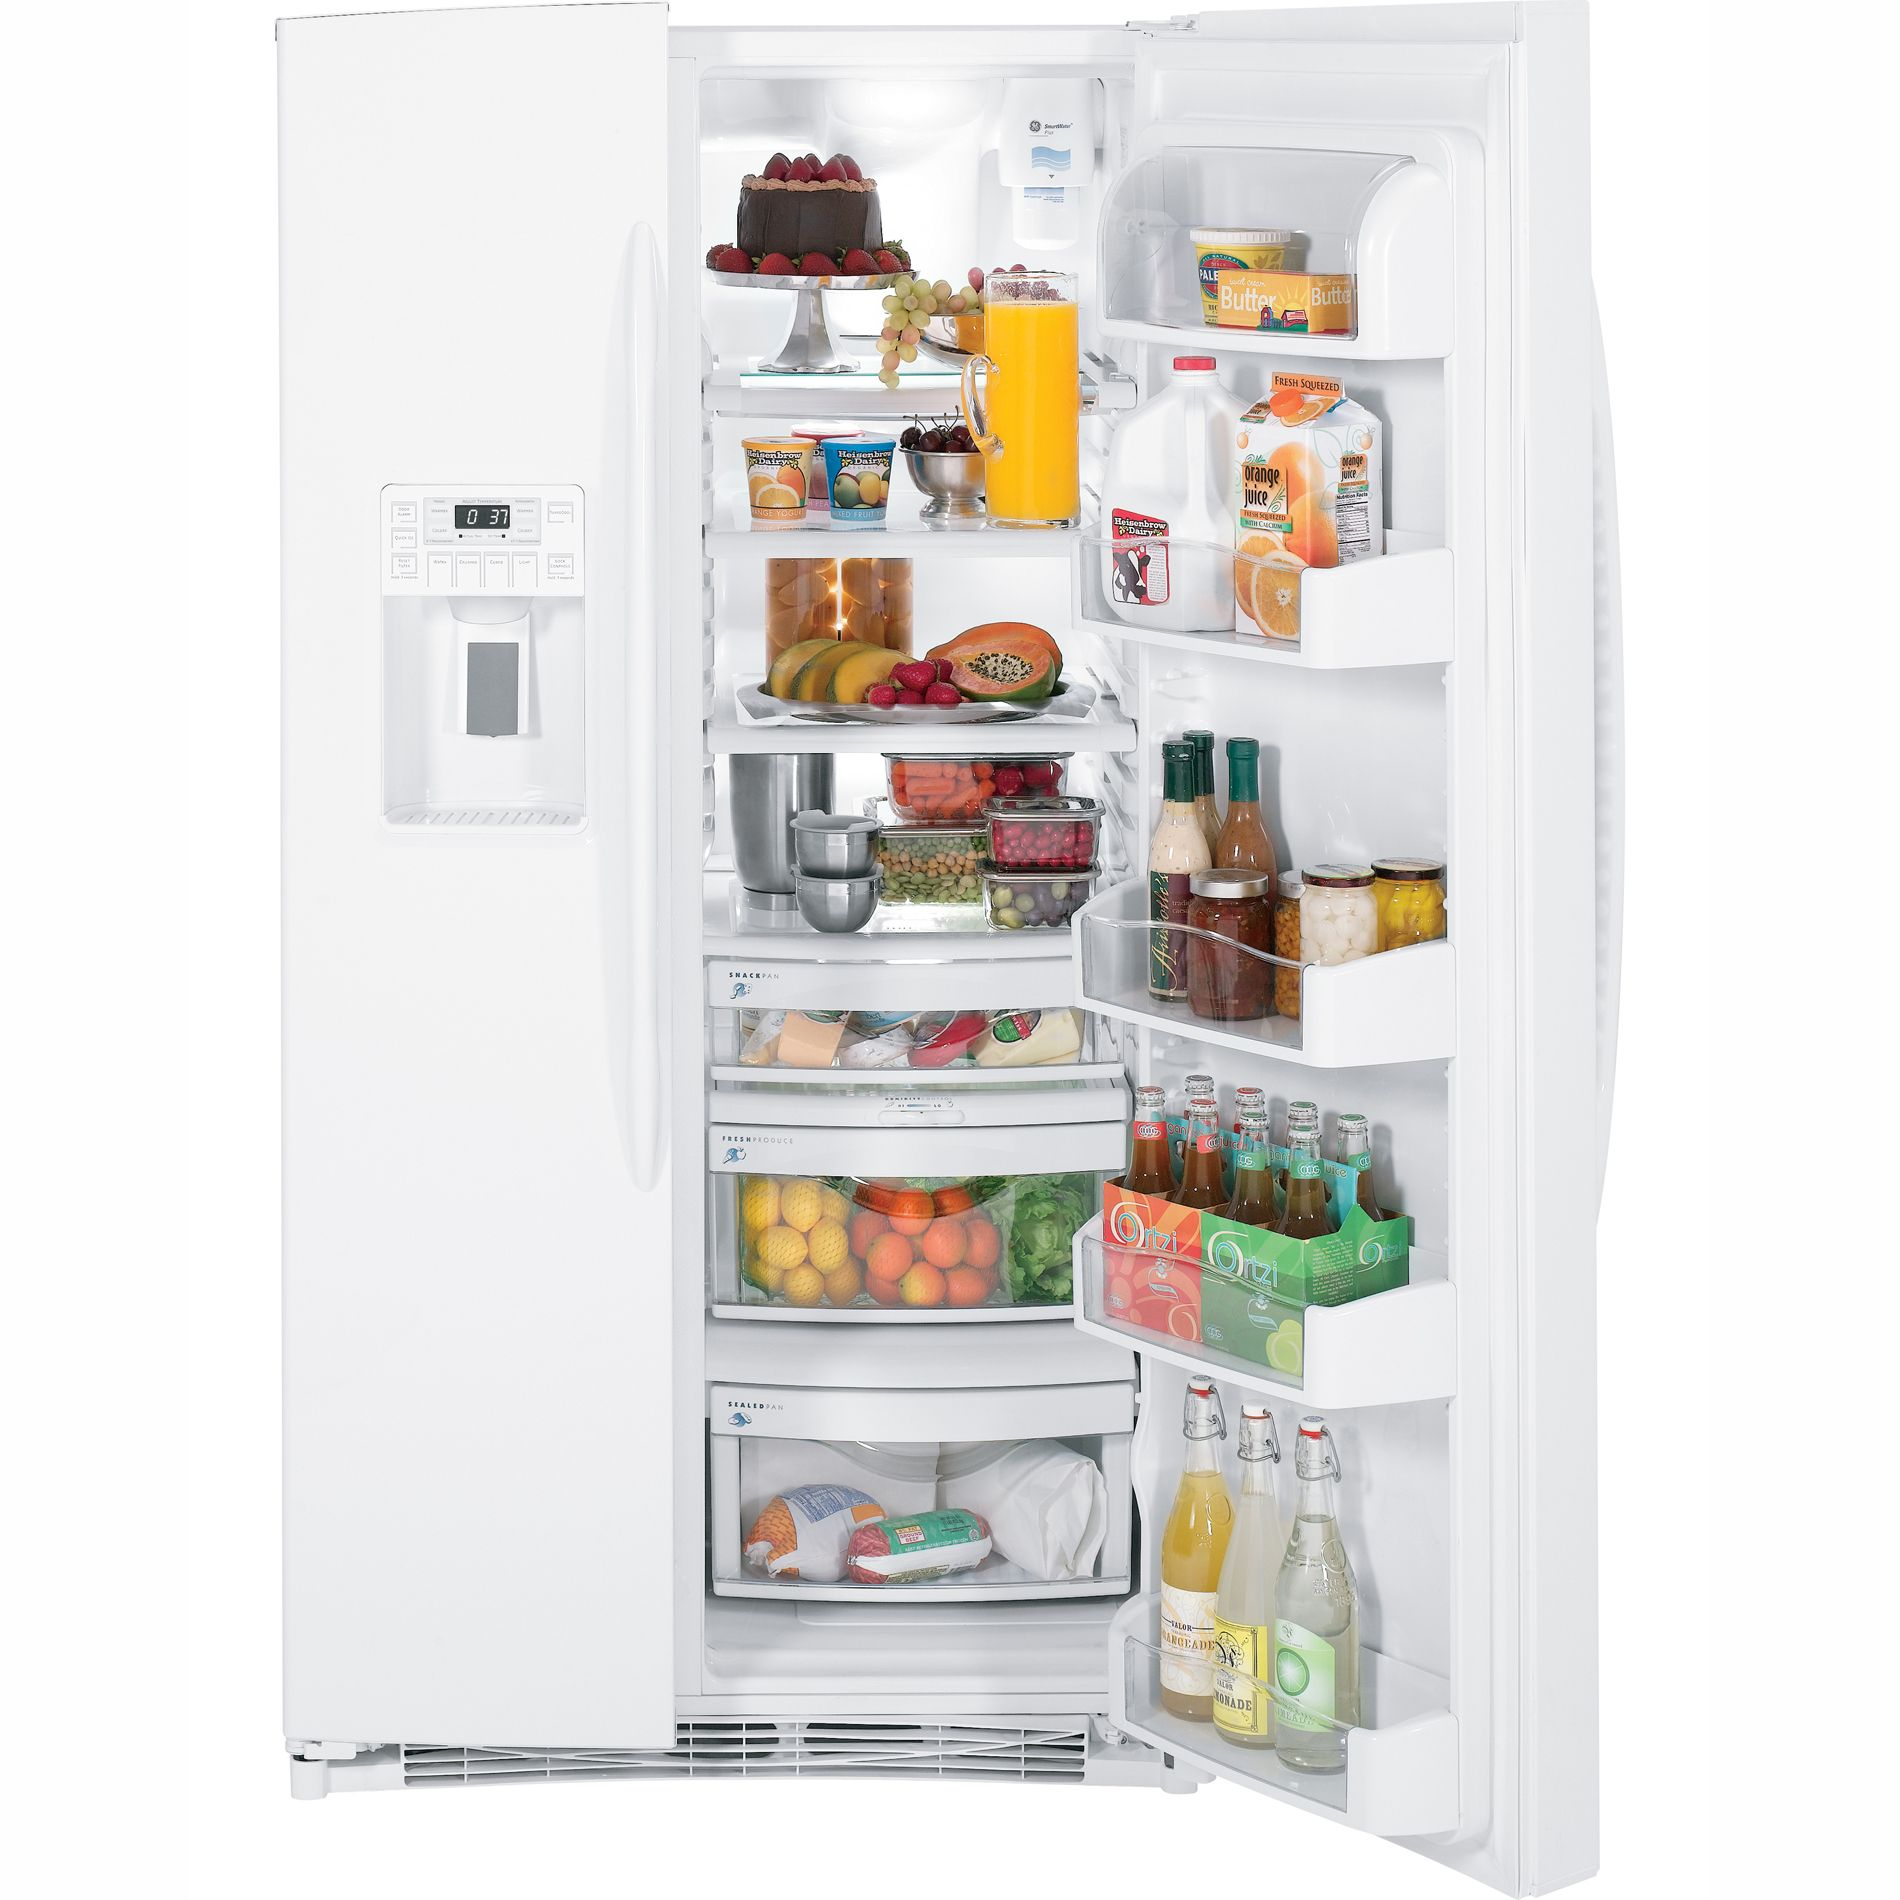 GE Profile Profile™ Series 25.9 cu. ft. Side-By-Side Refrigerator